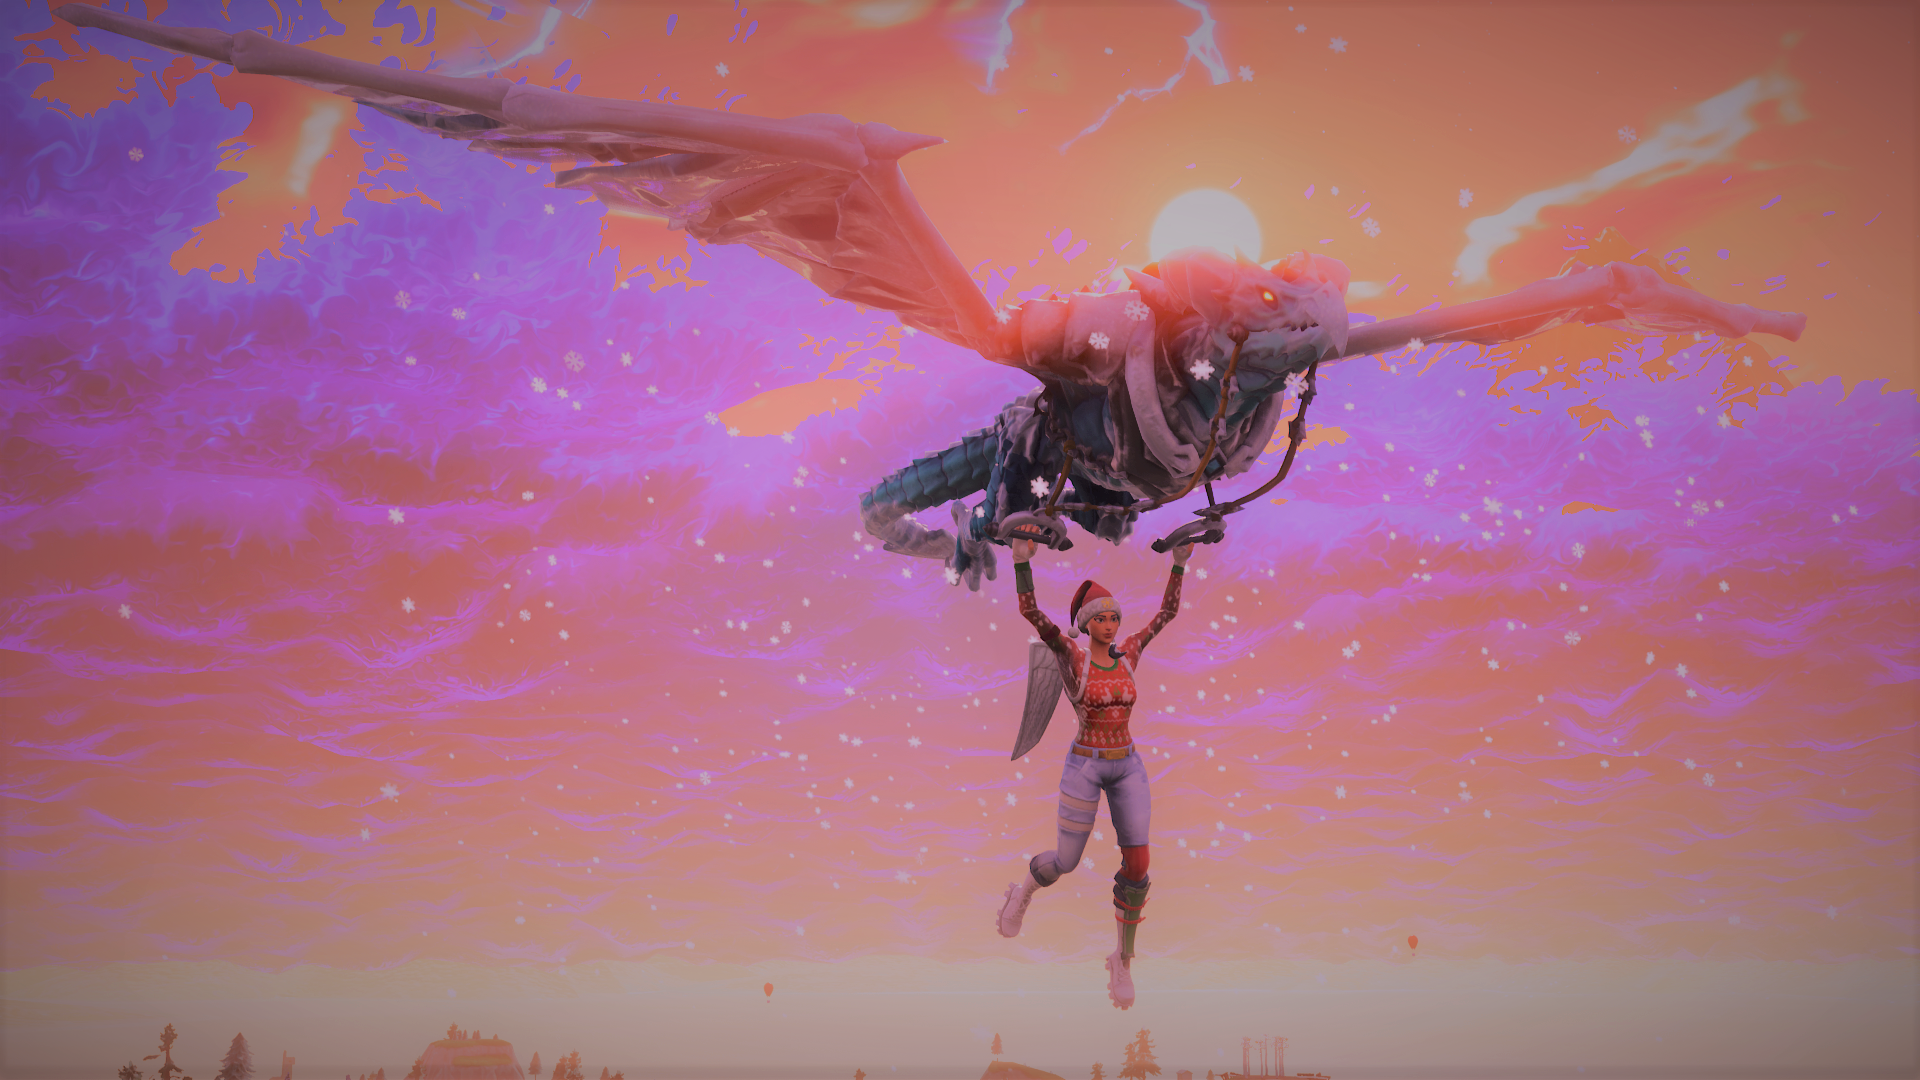 Some background pics of the new Glider with Nog Ops FortNiteBR 1920x1080